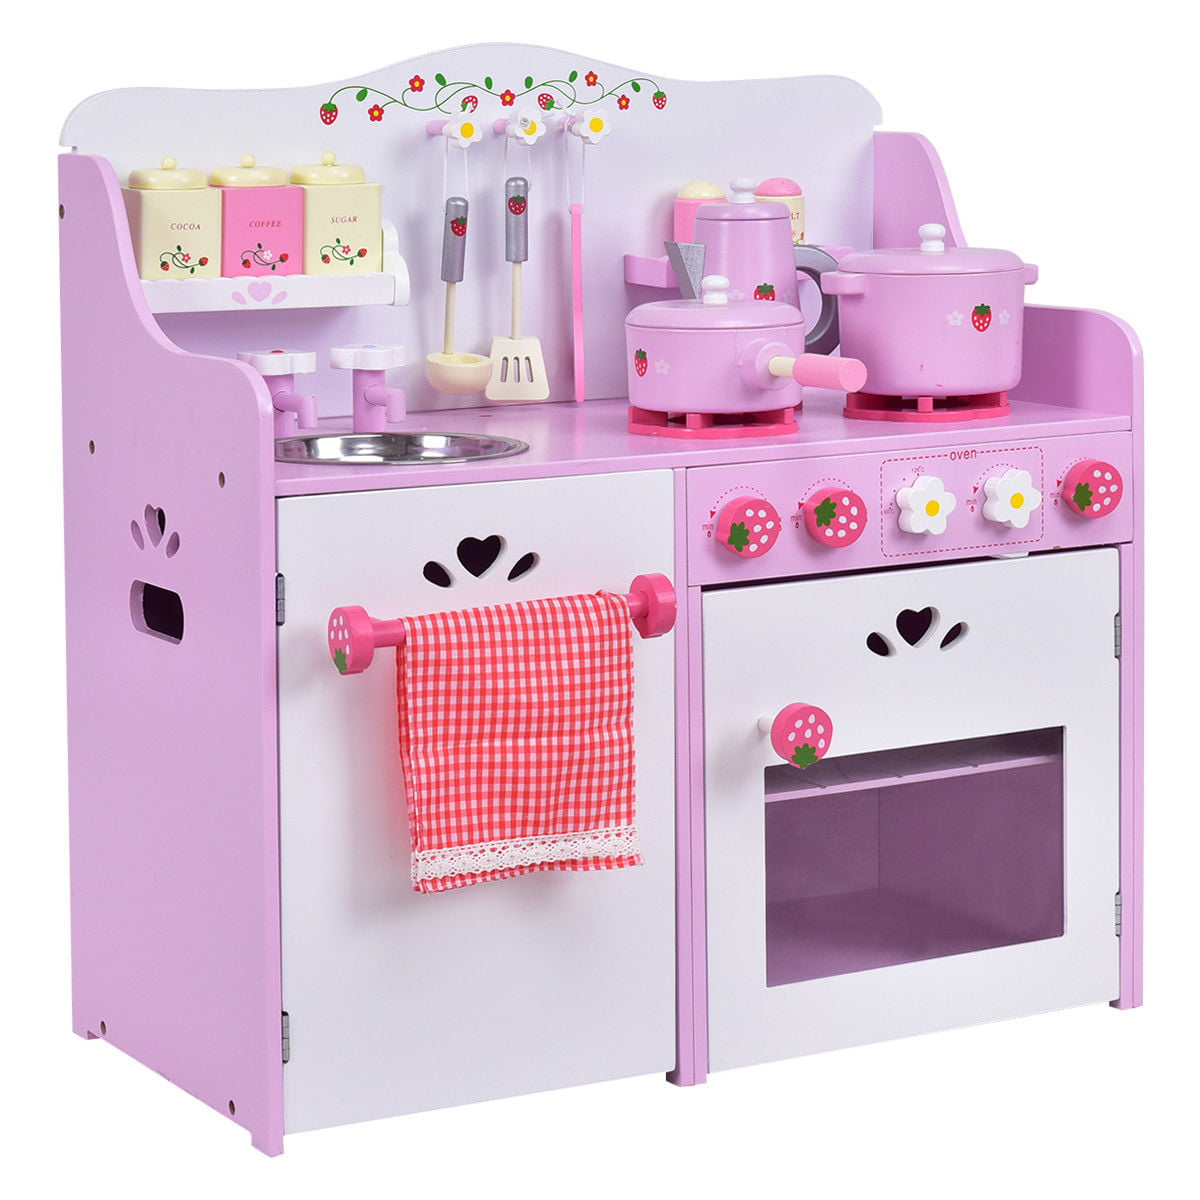 Costway Kids Wooden Play Set Kitchen Toy Strawberry Pretend Cooking Playset Toddler by Costway